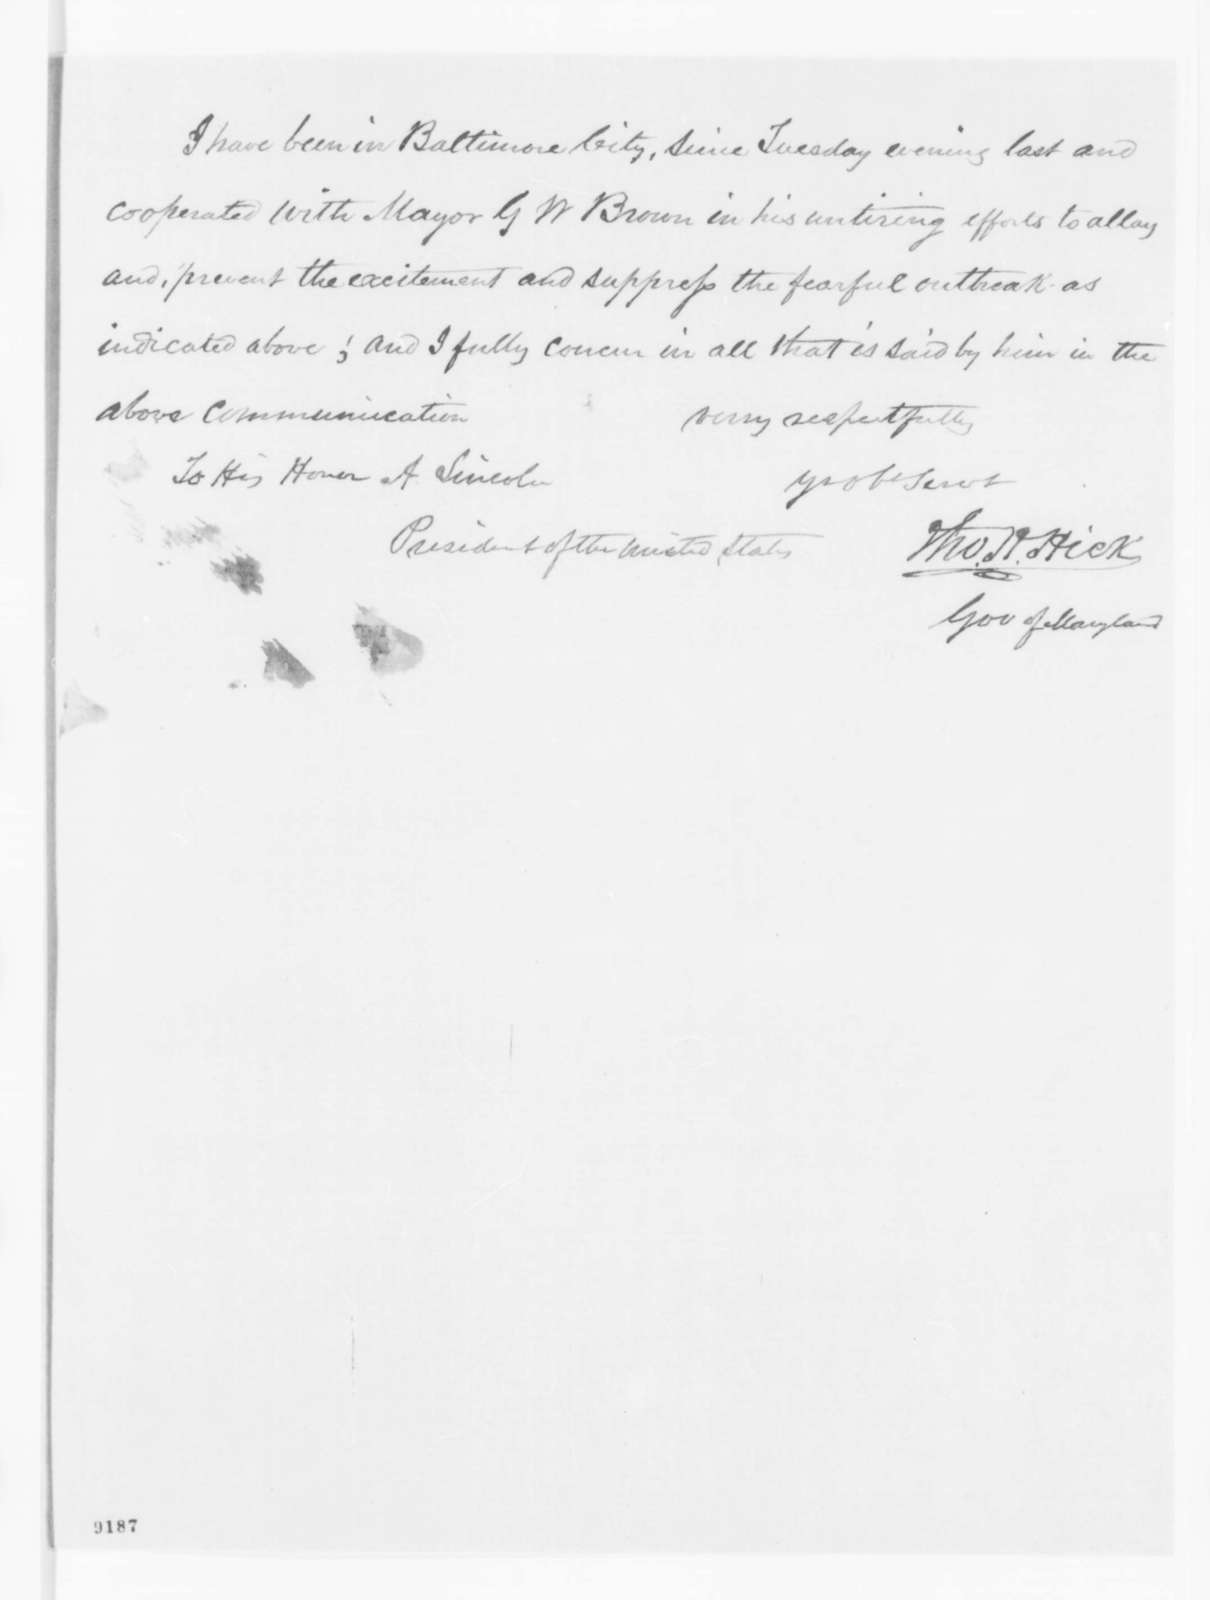 George W. Brown to Abraham Lincoln, Thursday, April 18, 1861  (Conditions in Baltimore; with endorsement from Thomas Hicks)